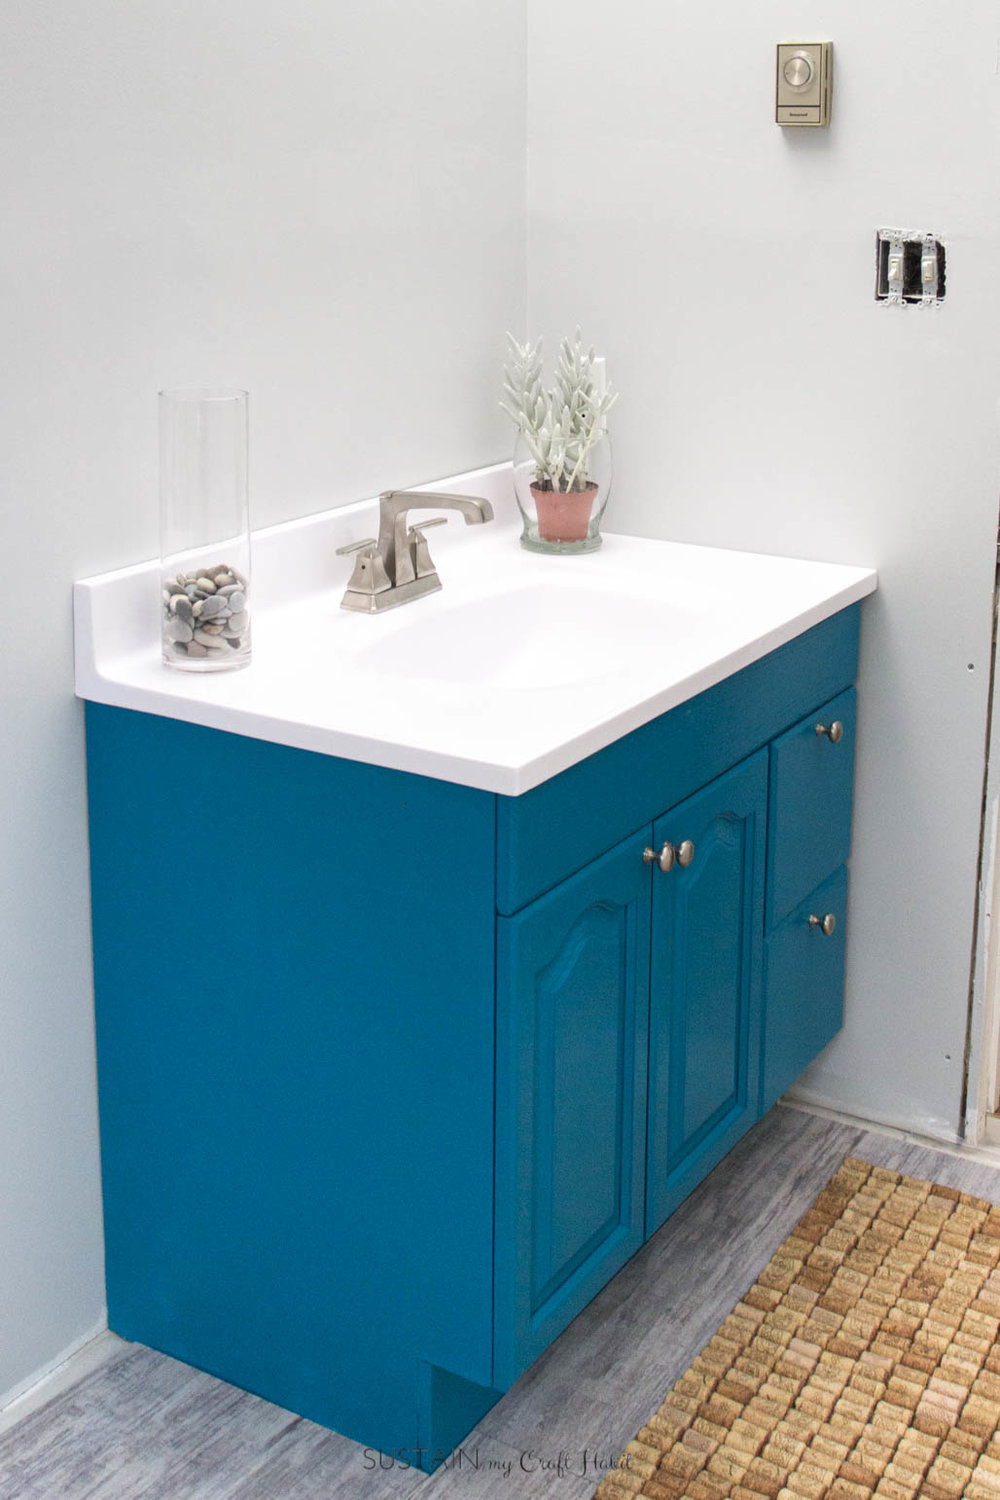 How to paint a wood bathroom vanity with DecoArt Satin Enamels in True Teal. #ad